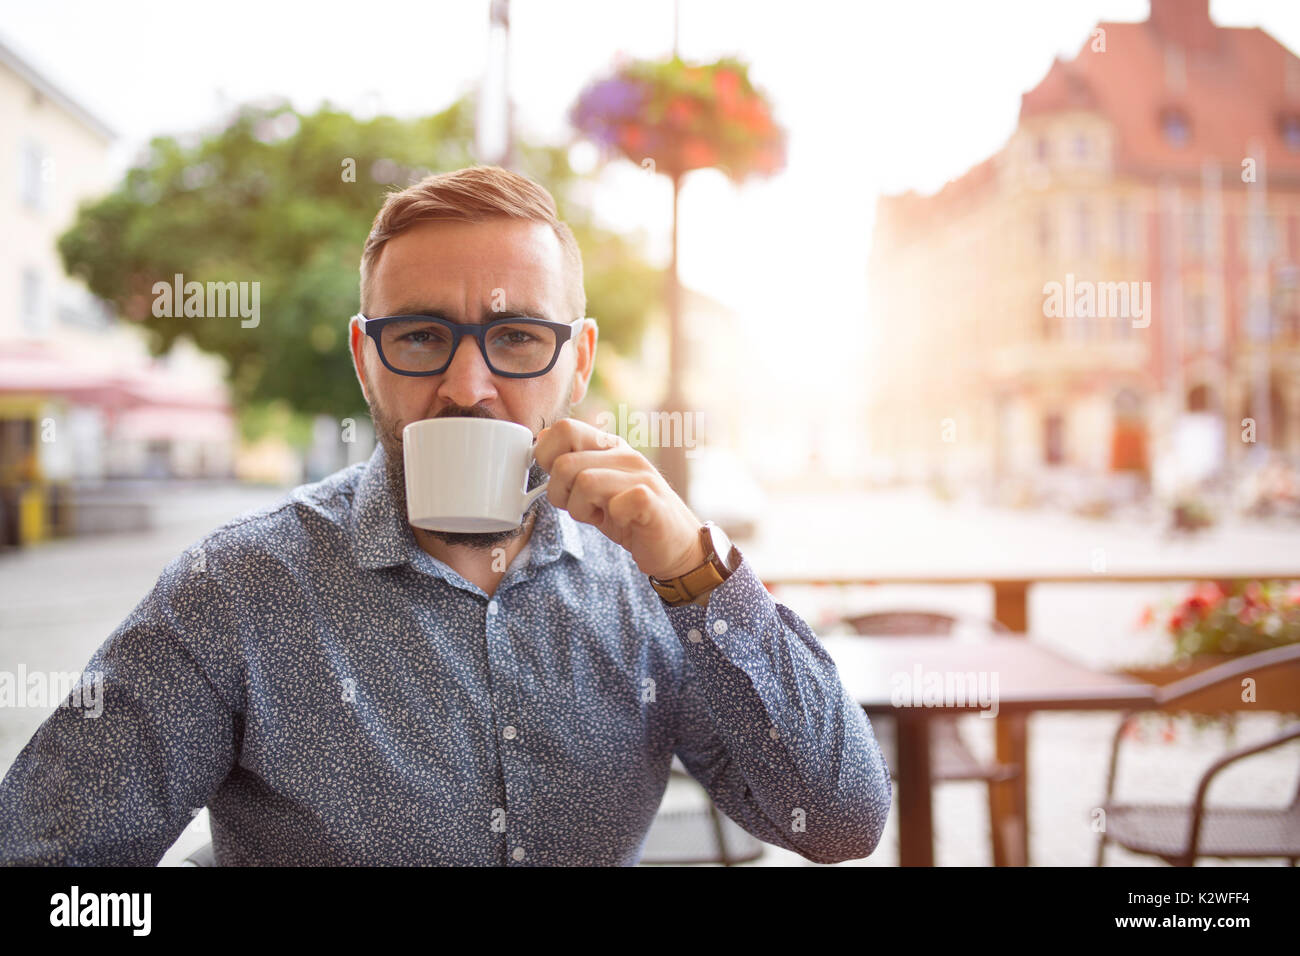 Elegant man drinking cappuccino in cafe-garden at old town Stock Photo